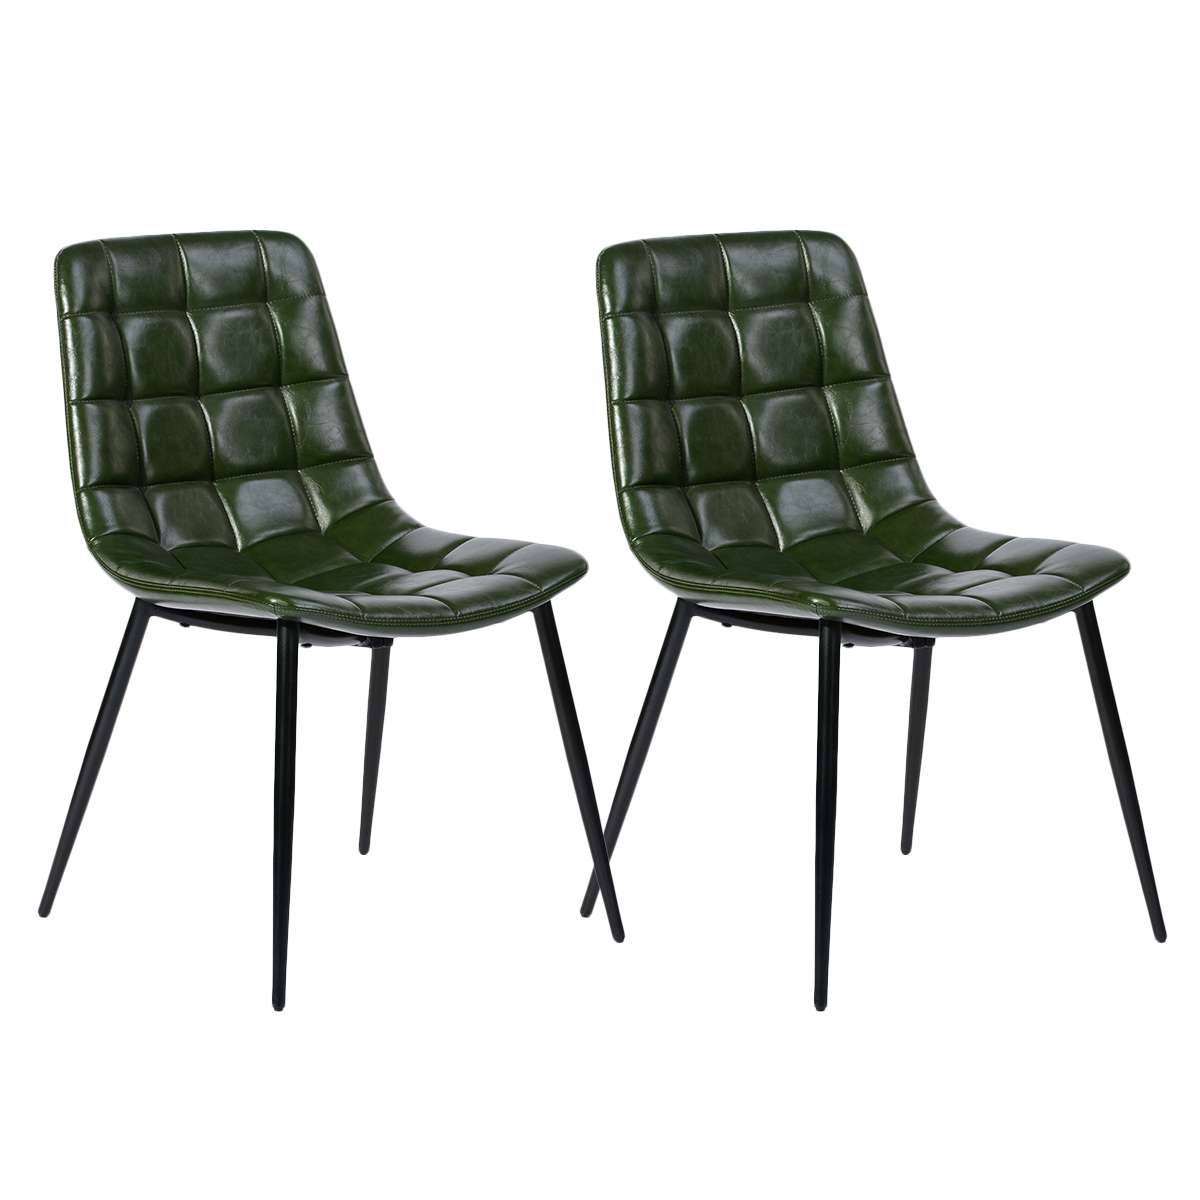 Furniture R Set of 10 Dining Chairs Ergonomic Soft Padded Backrest